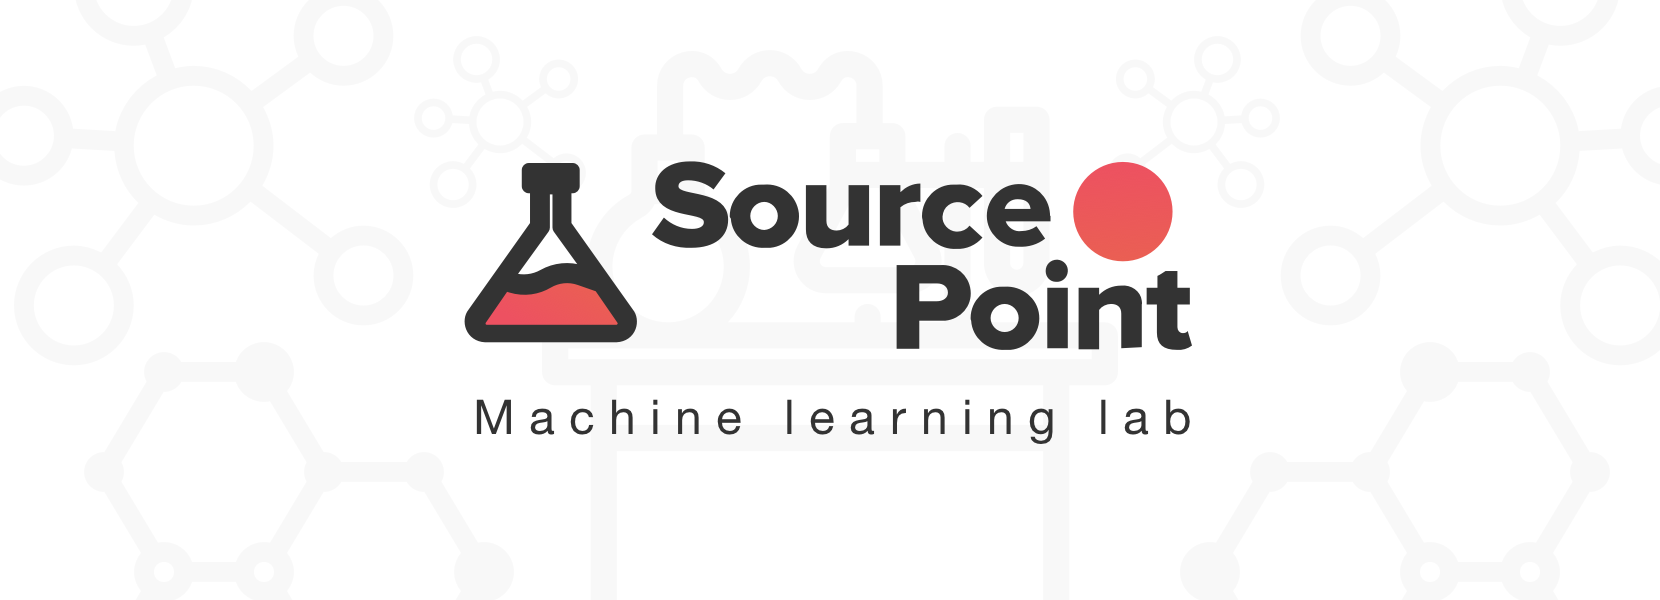 Sourcepoint Machine Learning Lab logo